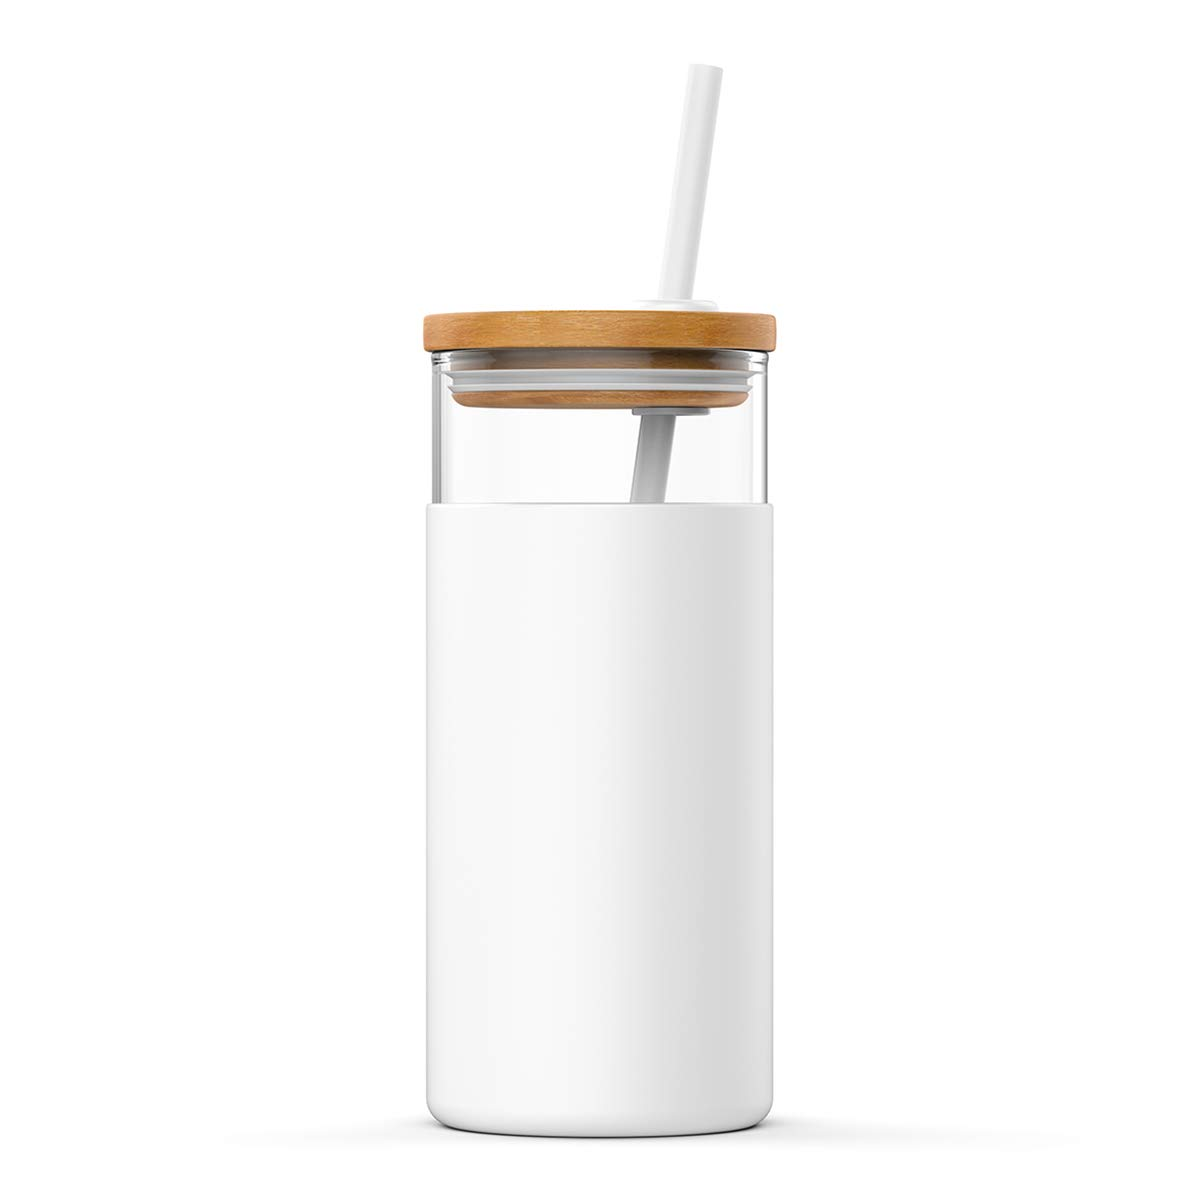 Tronco 20oz Glass Tumbler Straw Silicone Protective Sleeve Bamboo Lid - BPA Free(White by Tronco